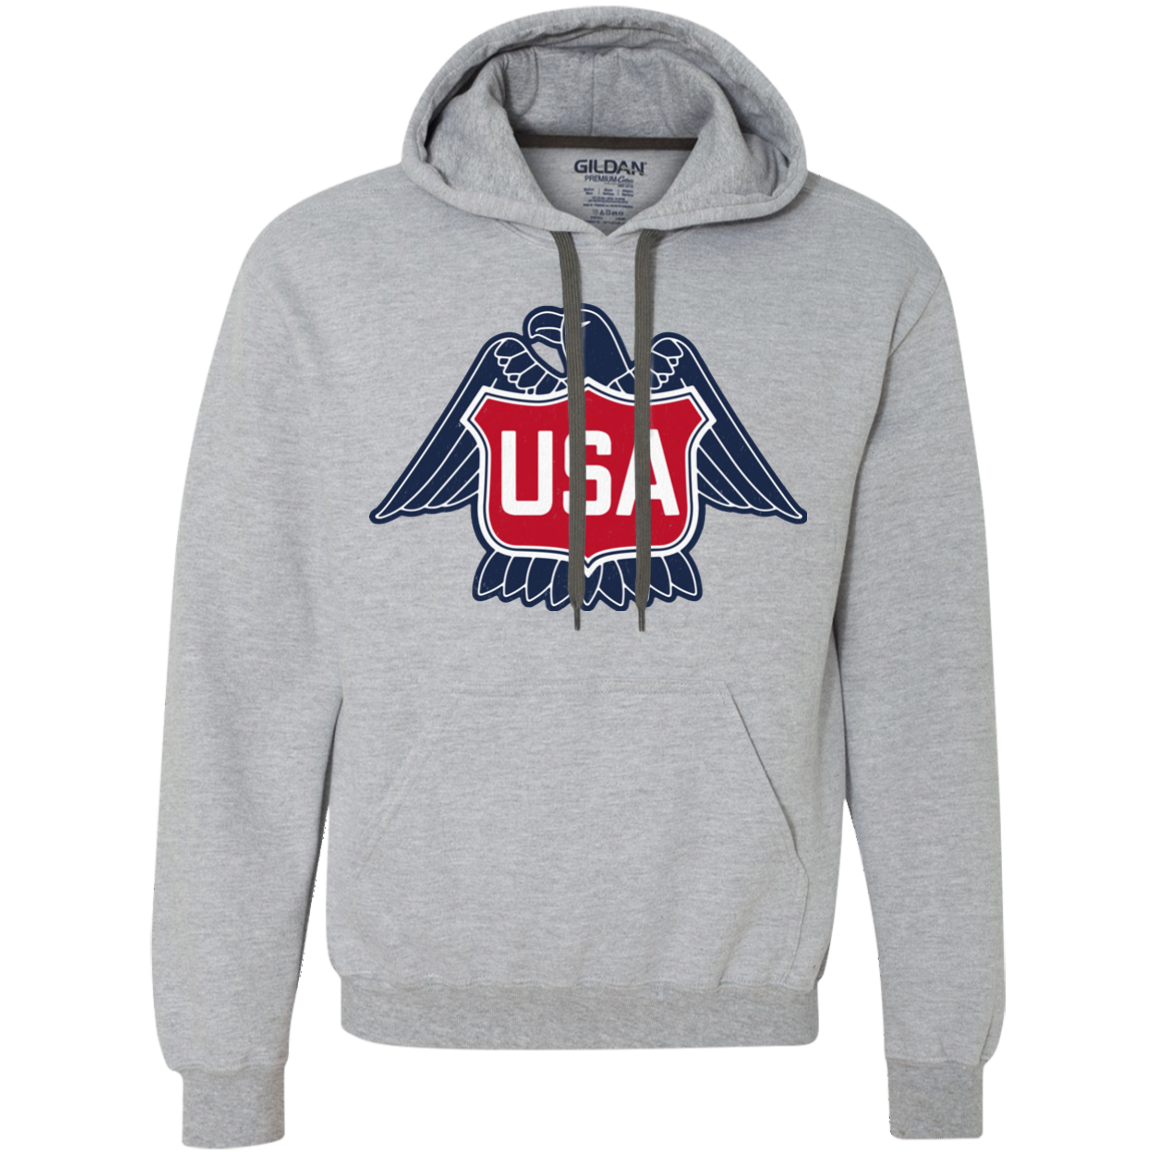 US $7.57 14% OFF|American team, USA, hockey, vintage 1976, eagle, jersey logo, retrograde, sweatshirt women men clothes coat hoodie|Hoodies &